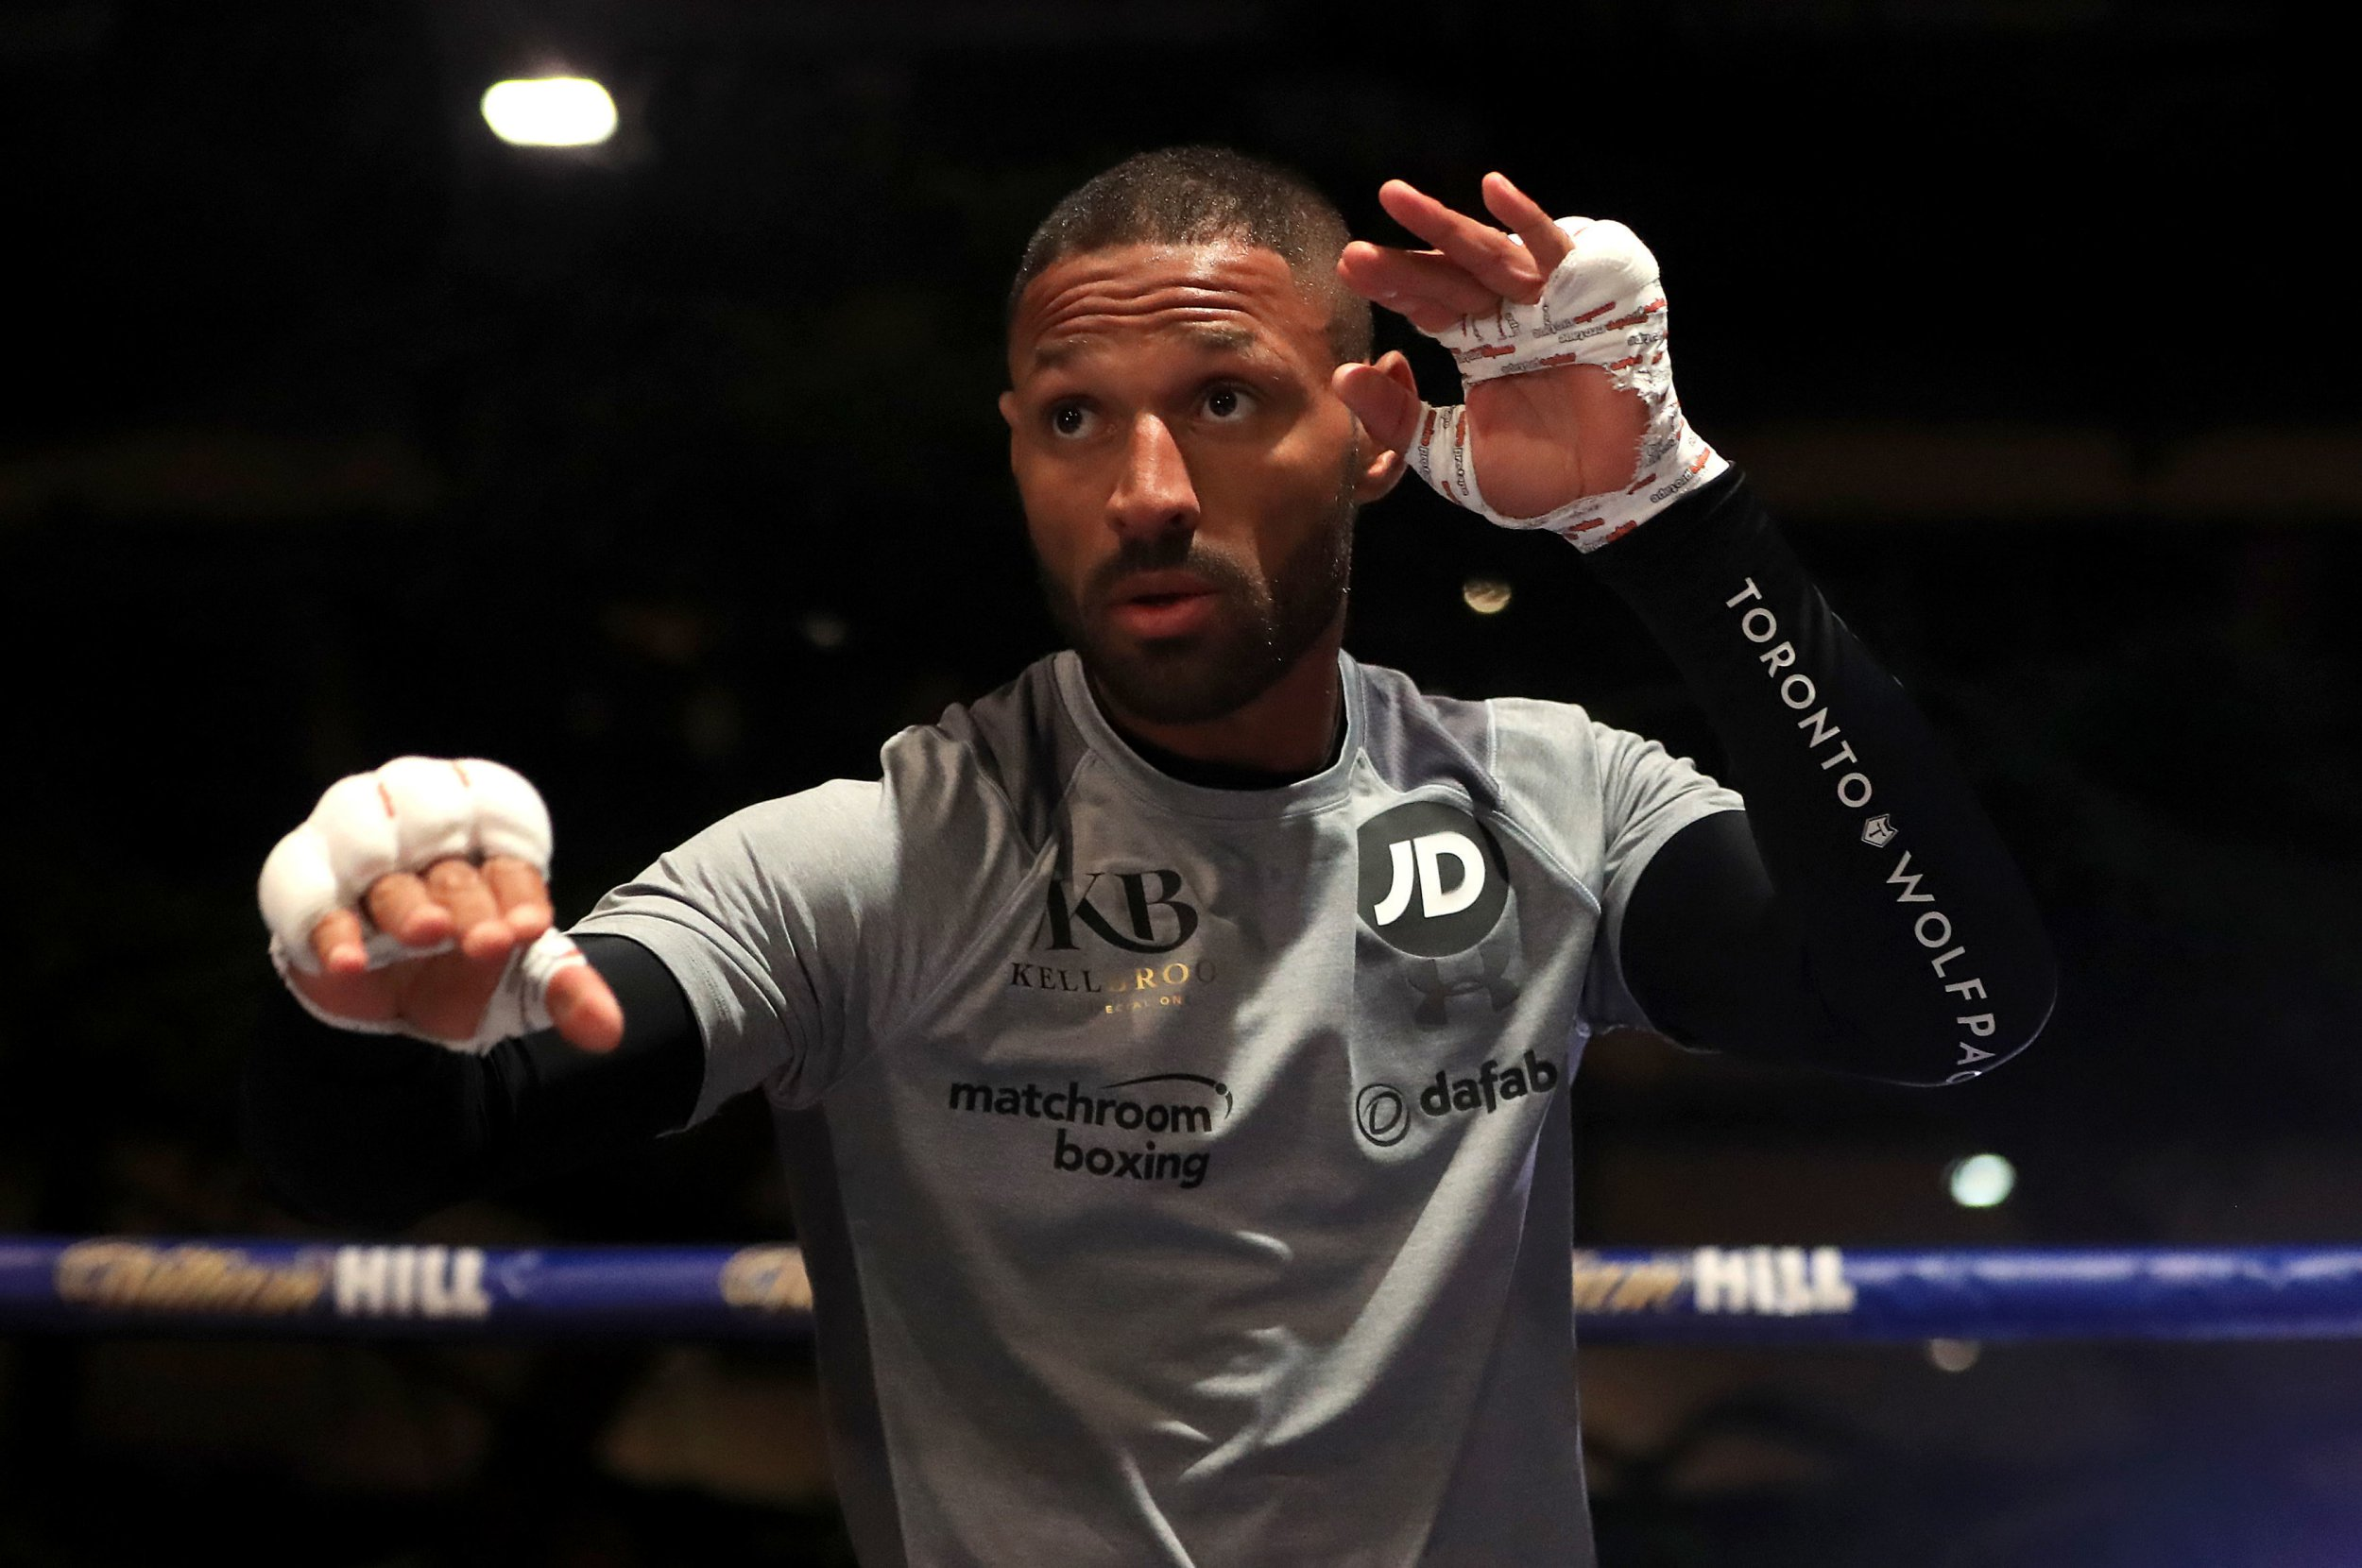 Kell Brook in action during the public workout at Sheffield Winter Garden. PRESS ASSOCIATION Photo. Picture date: Wednesday December 5, 2018. See PA story BOXING Sheffield. Photo credit should read: Simon Cooper/PA Wire